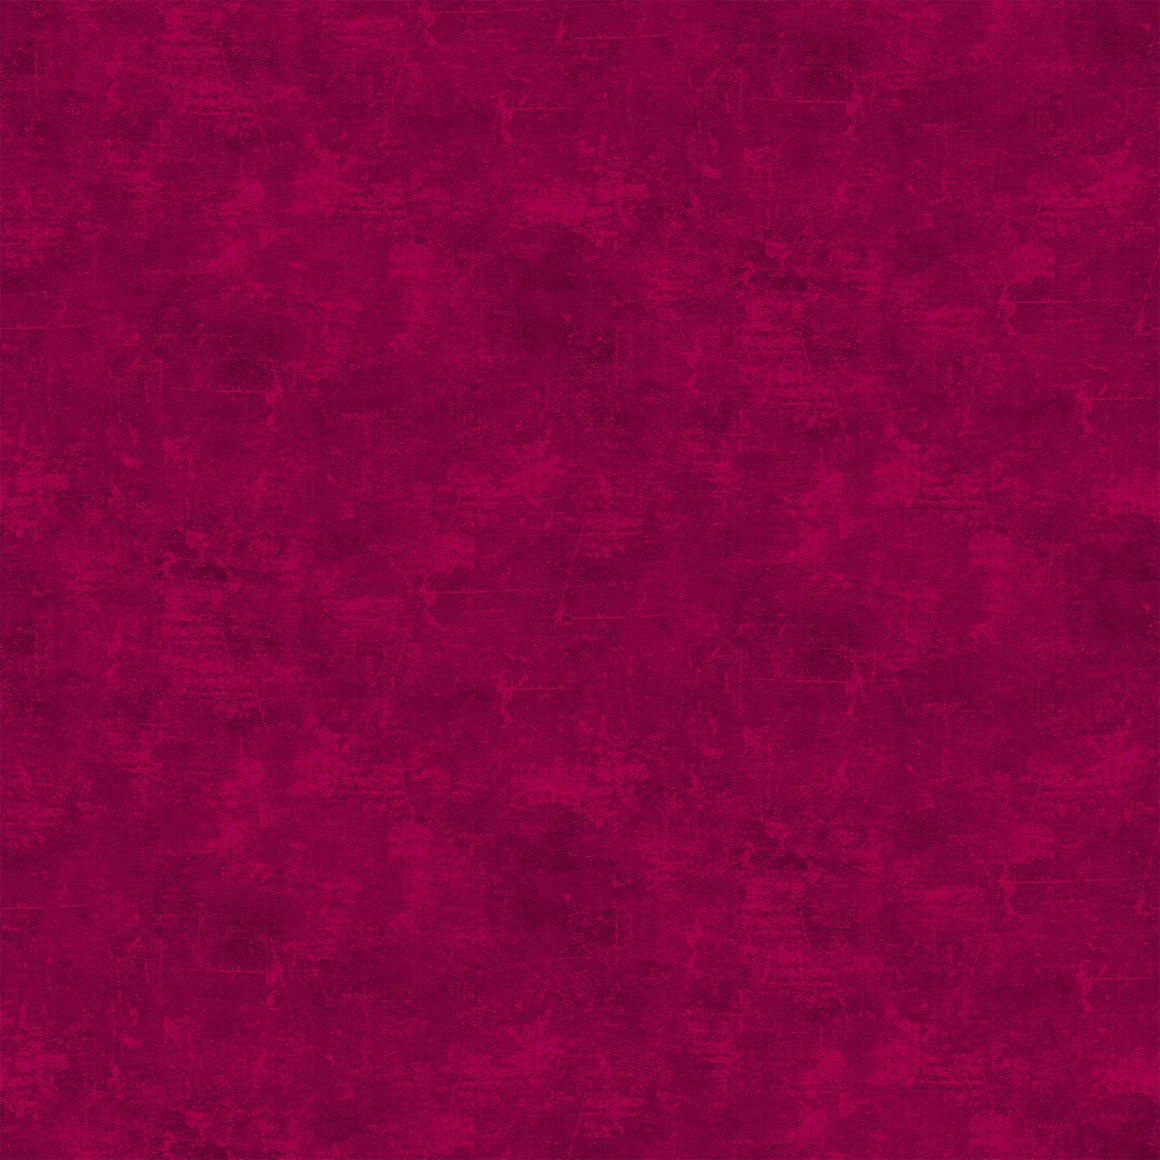 Sangria - Canvas Texture - 9030-26, Designer Fabric, Northcott, [variant_title] - Mad About Patchwork